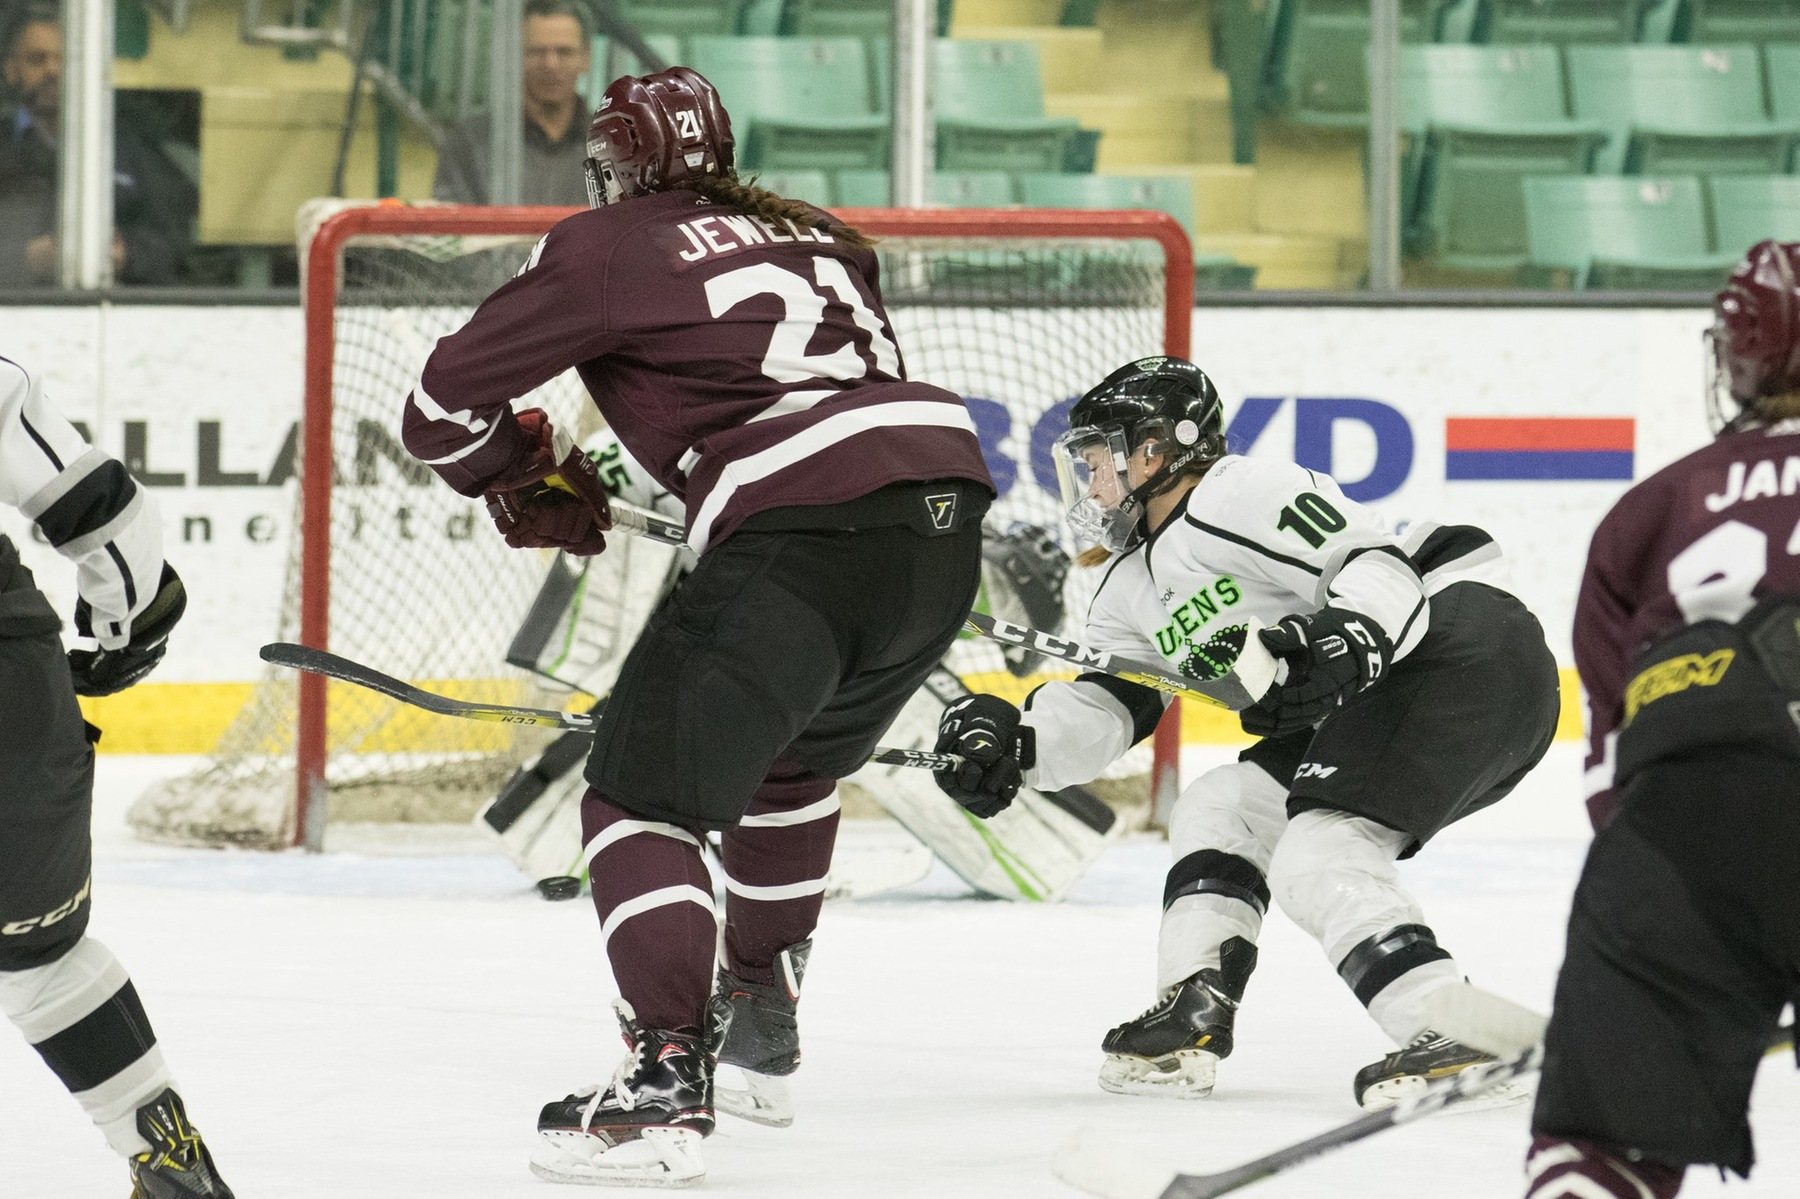 RDC's Kirsten Baumgardt (10) defends against MacEwan's Carley Jewell (21). Both student-athletes played well in Edmonton. Photo - Tony Hansen